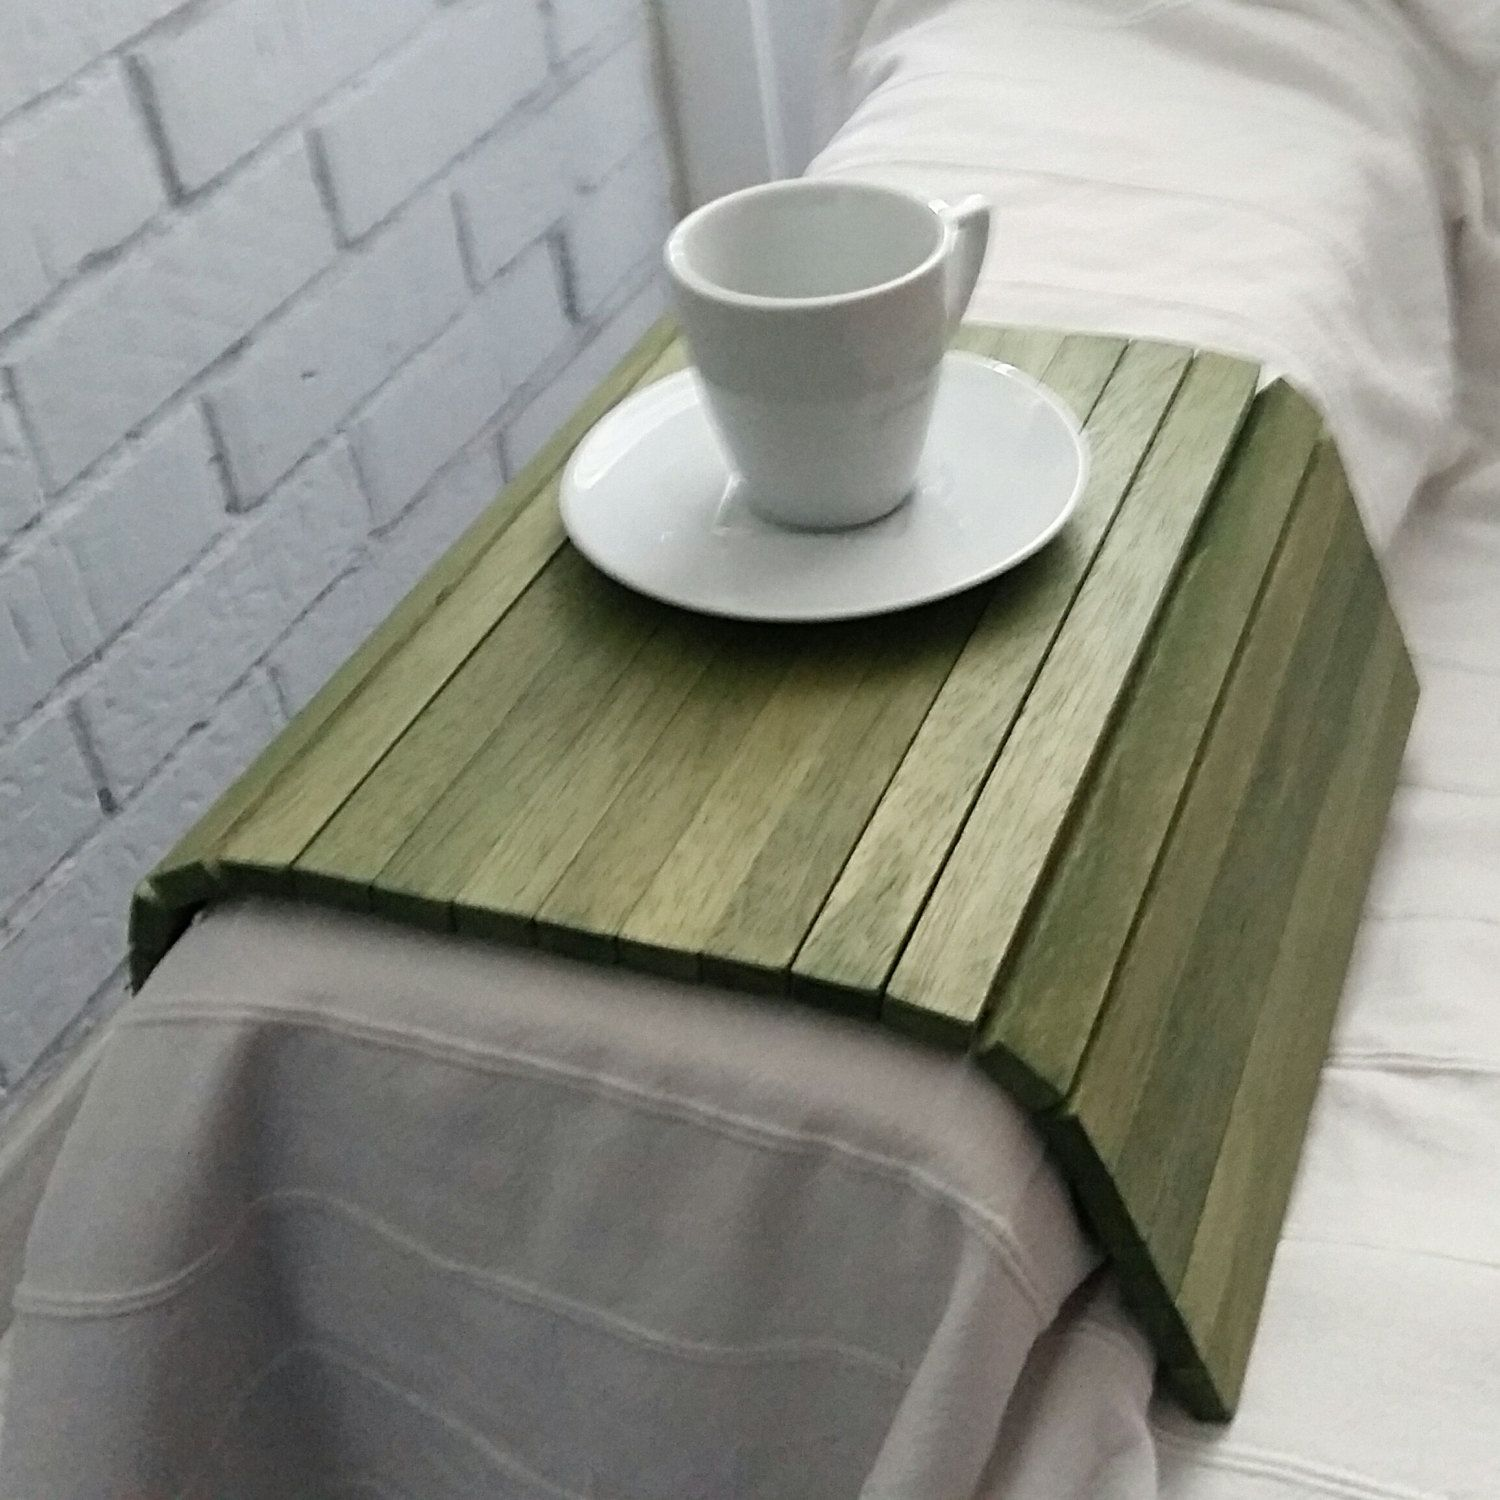 Couch Tray Table Breakfast Tray Table Breakfast Tray Find The Latest News On